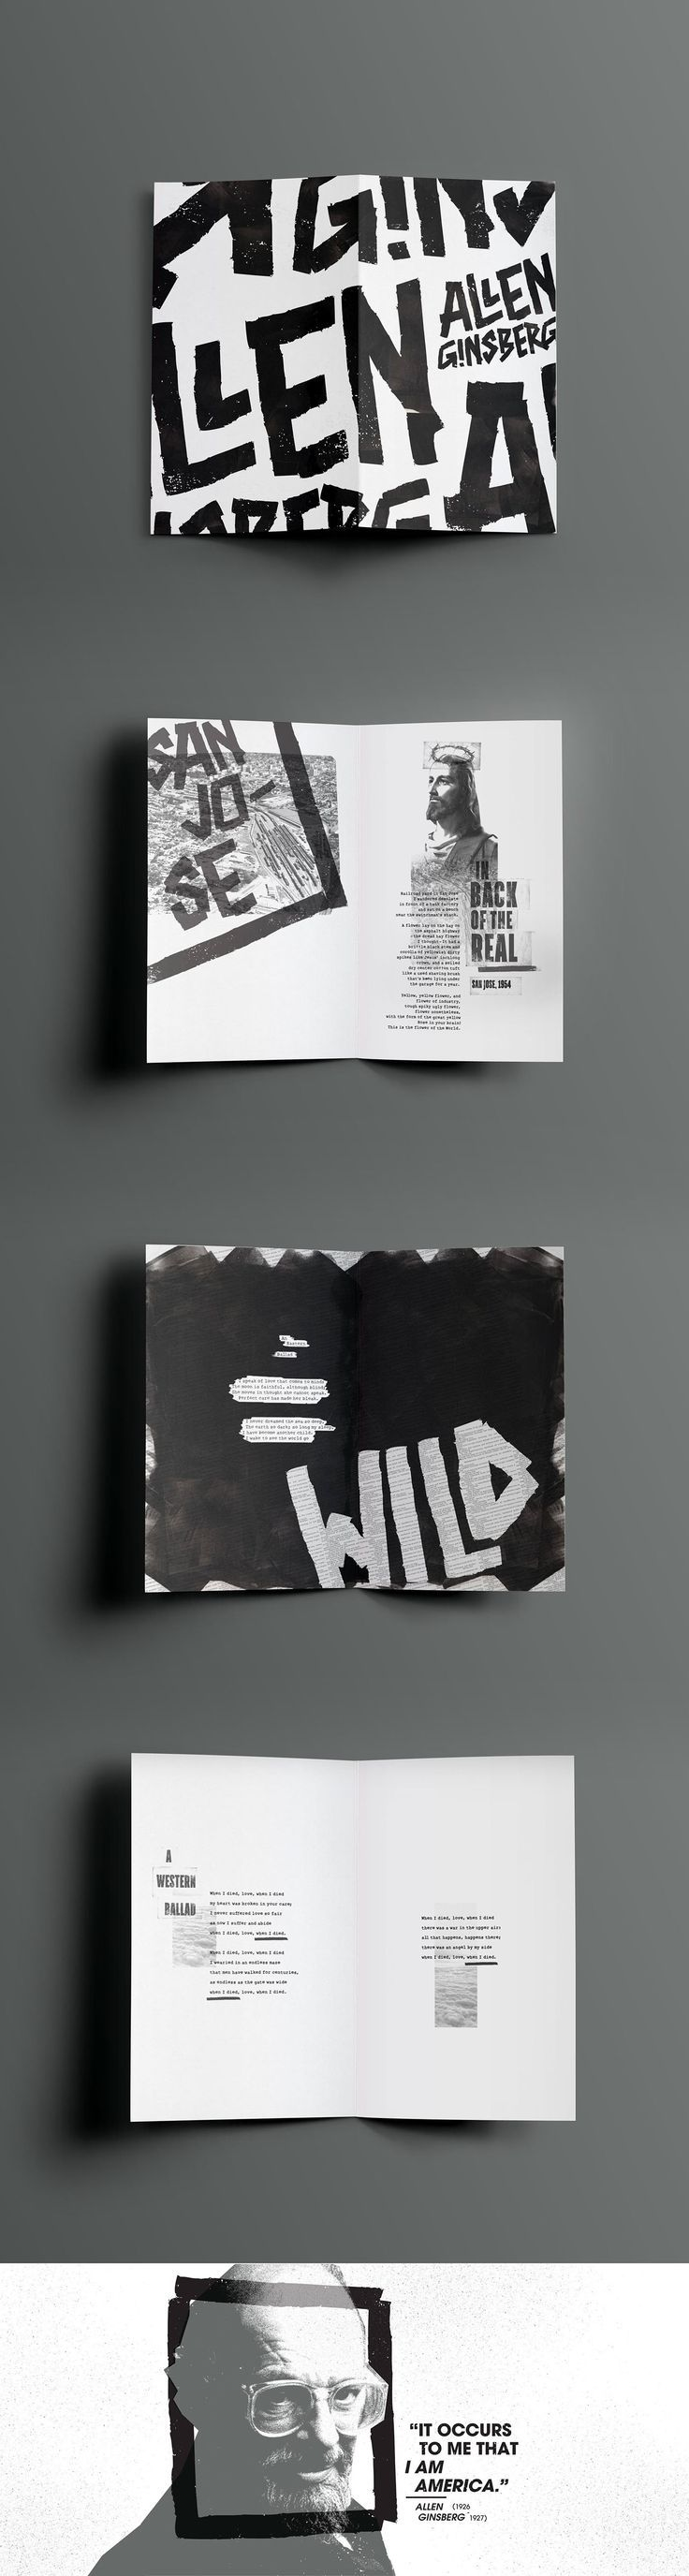 I like the edginess and character from this. Our branding elements (+,1889, PREMIUM+ORGANIC, brush strokes) could be used in a similar bold and edgy way. I do prefer something a bit cleaner and more modern though but this is just an example of the character/edginess I would like to have as a small part of the look of our website. – Simon P.